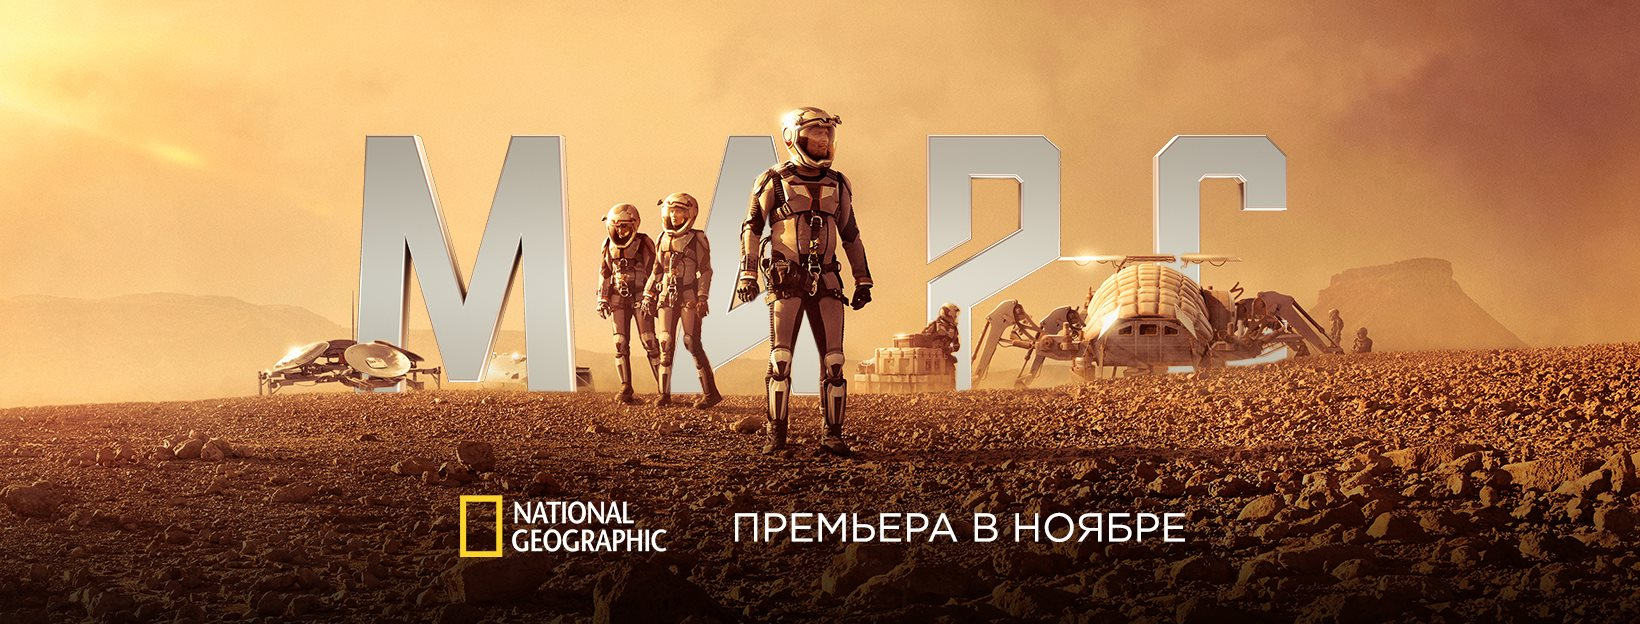 Марс 2 на National Geographic